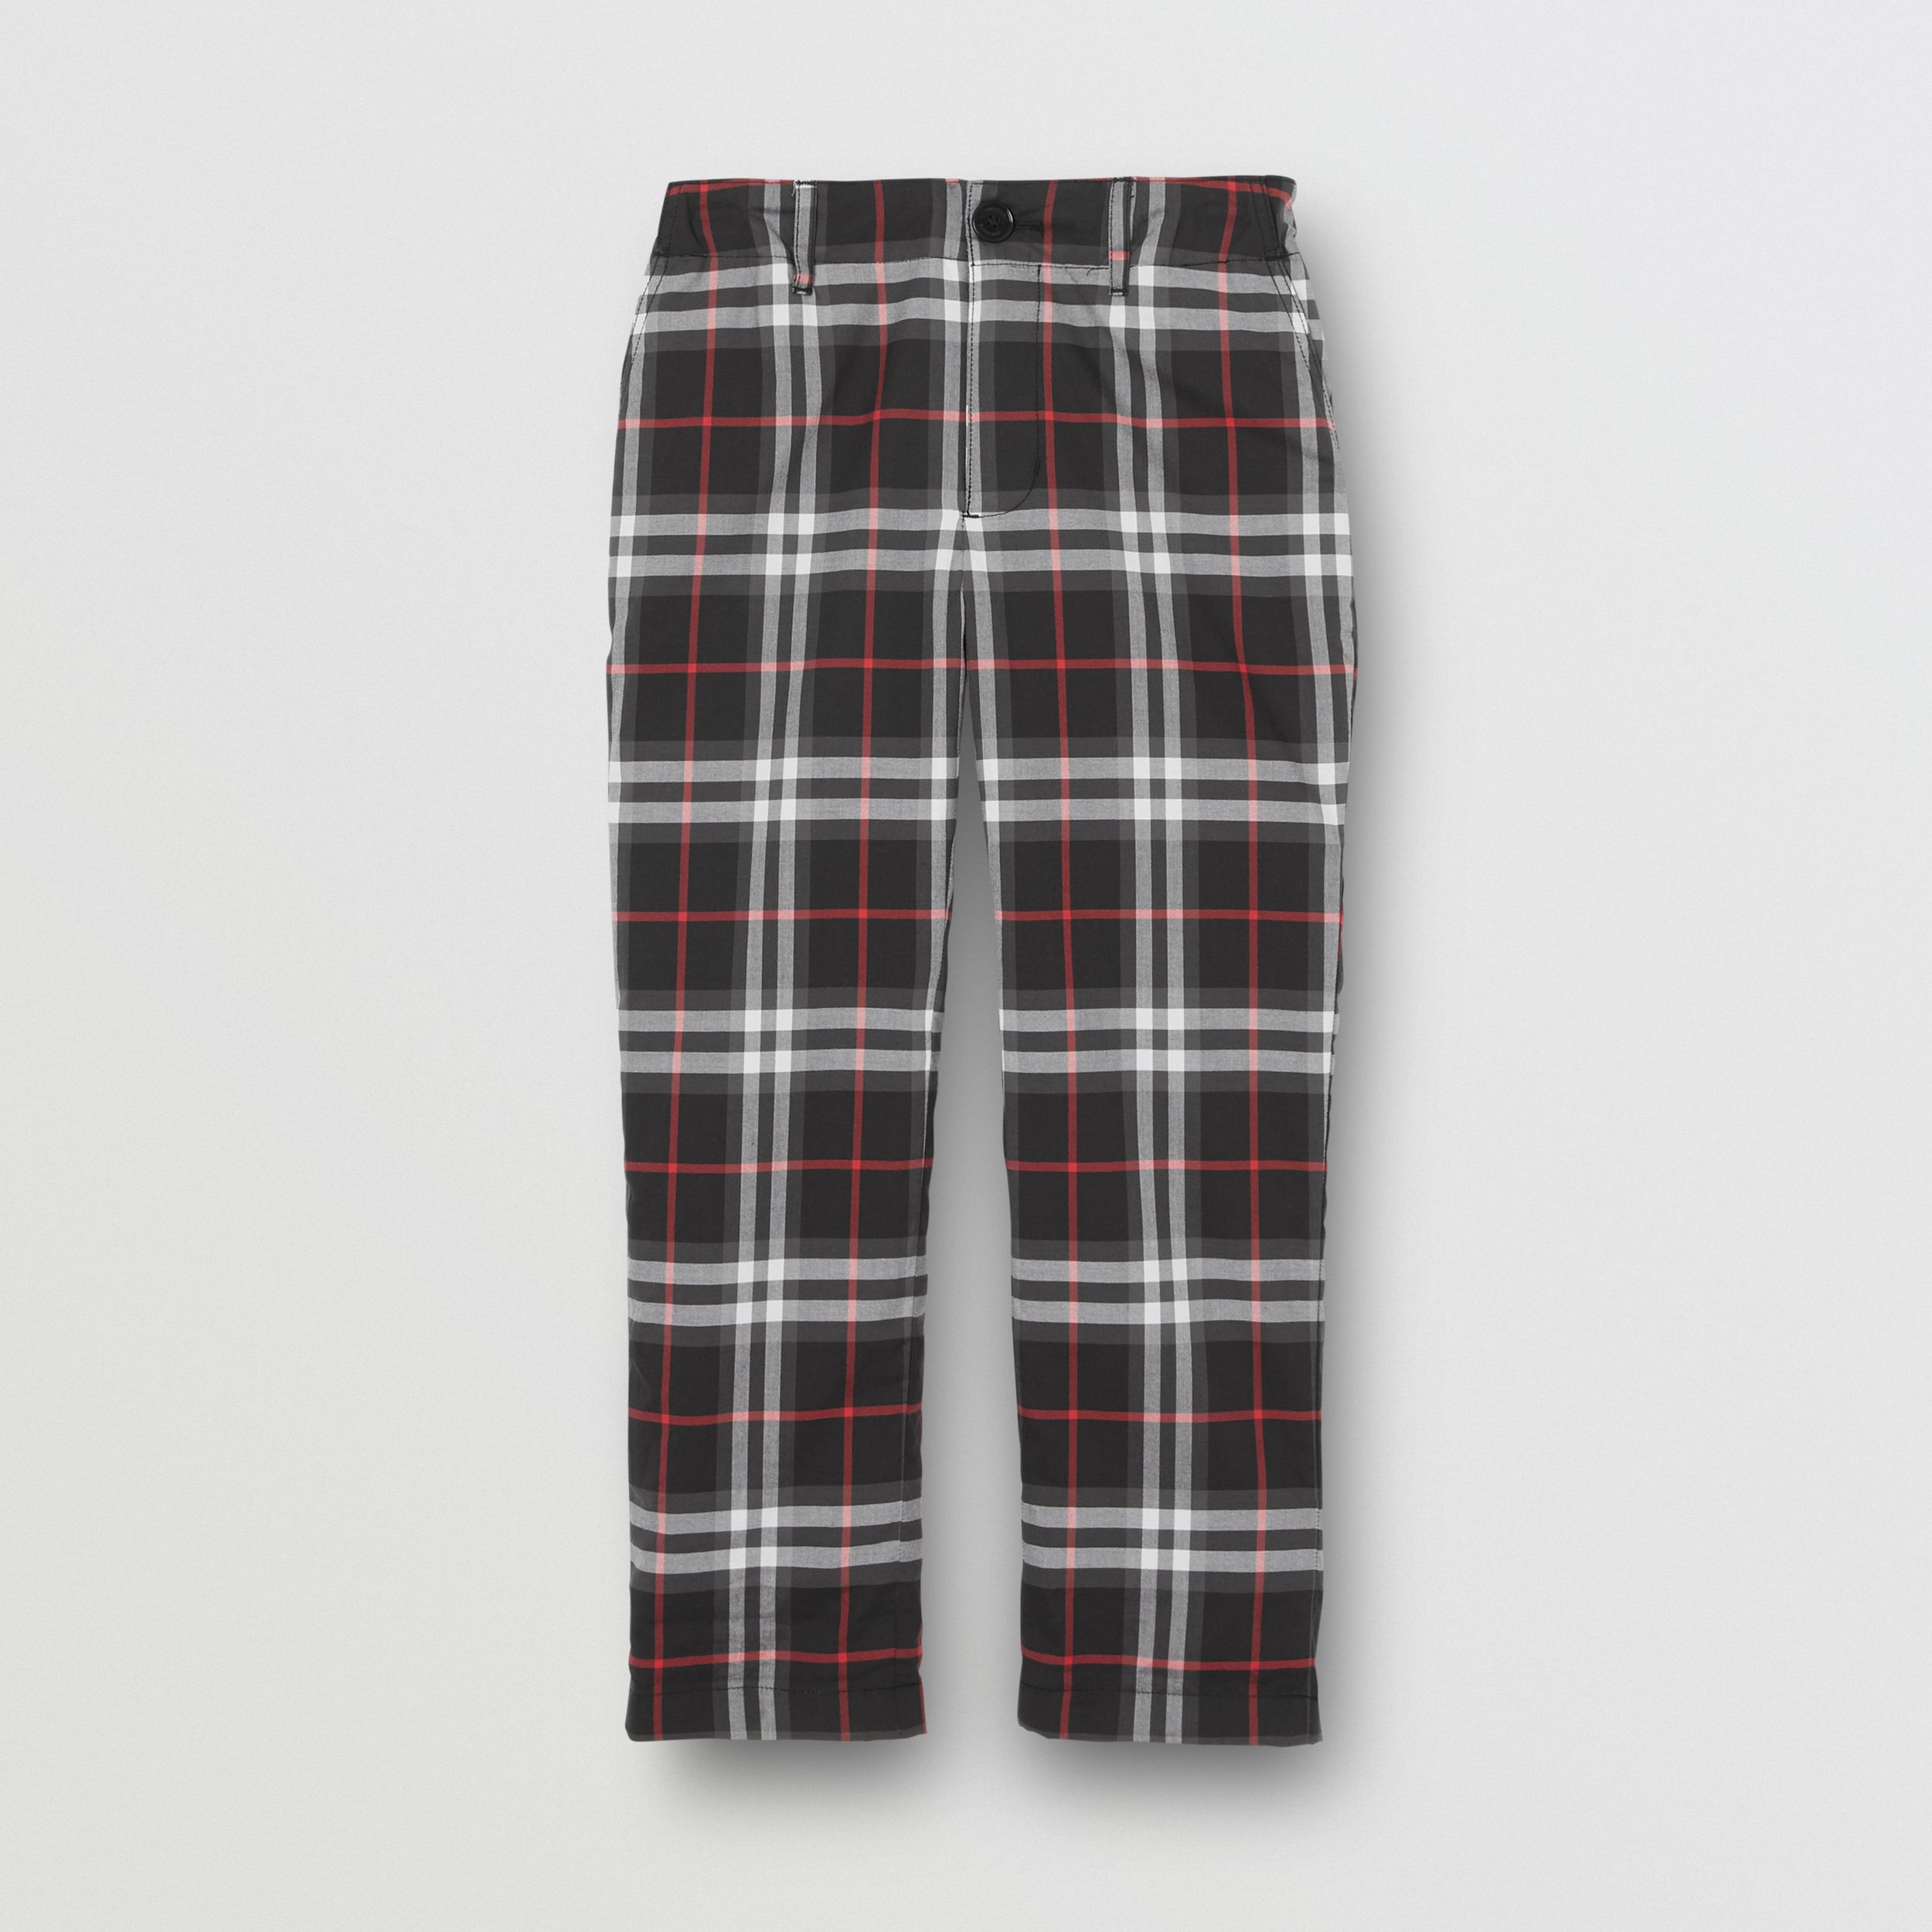 Vintage Check Cotton Tailored Trousers in Black | Burberry - 1